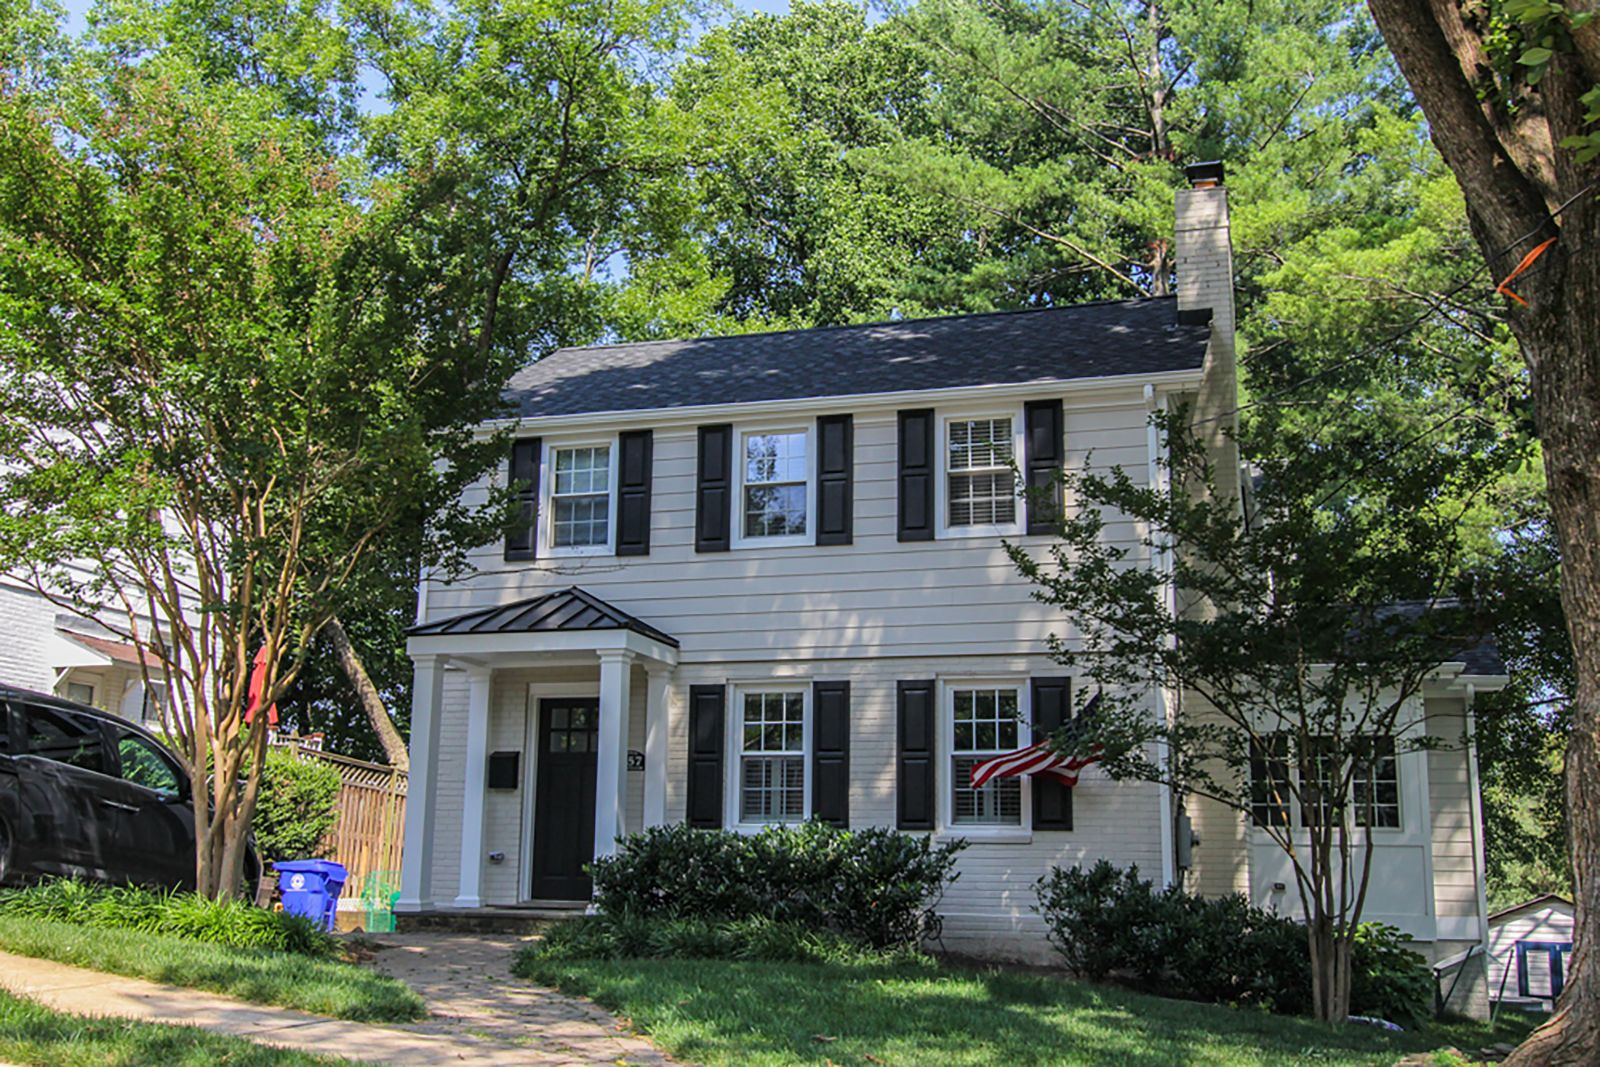 Dominion hills real estate on 1 23 2016 3 homes for sale today for Classic homes va